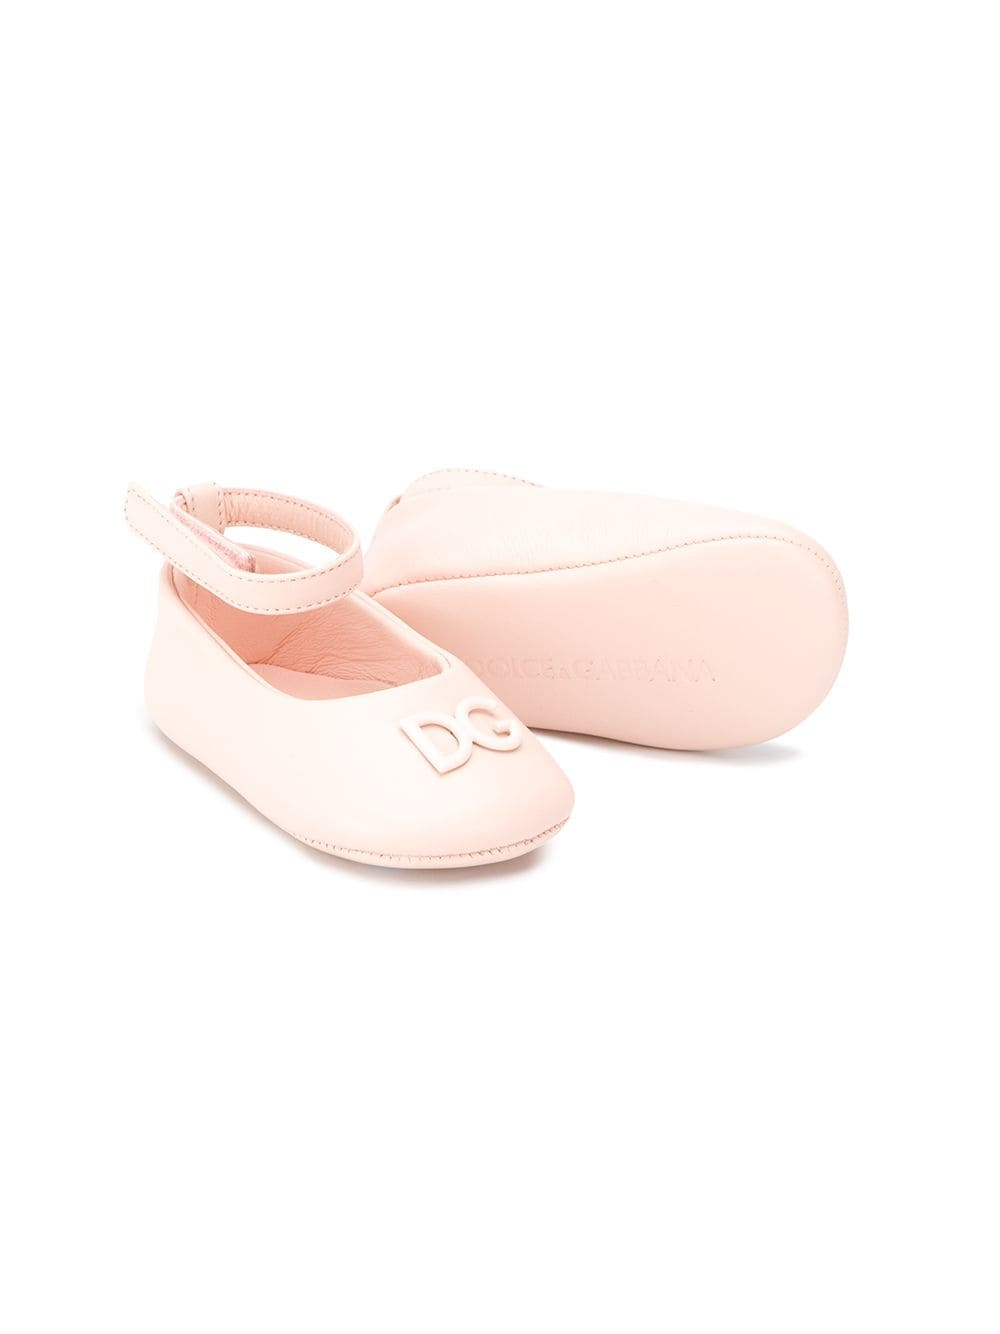 DOLCE & GABBANA KIDS Ankle Strap Ballerina Shoes Pink - Maison De Fashion